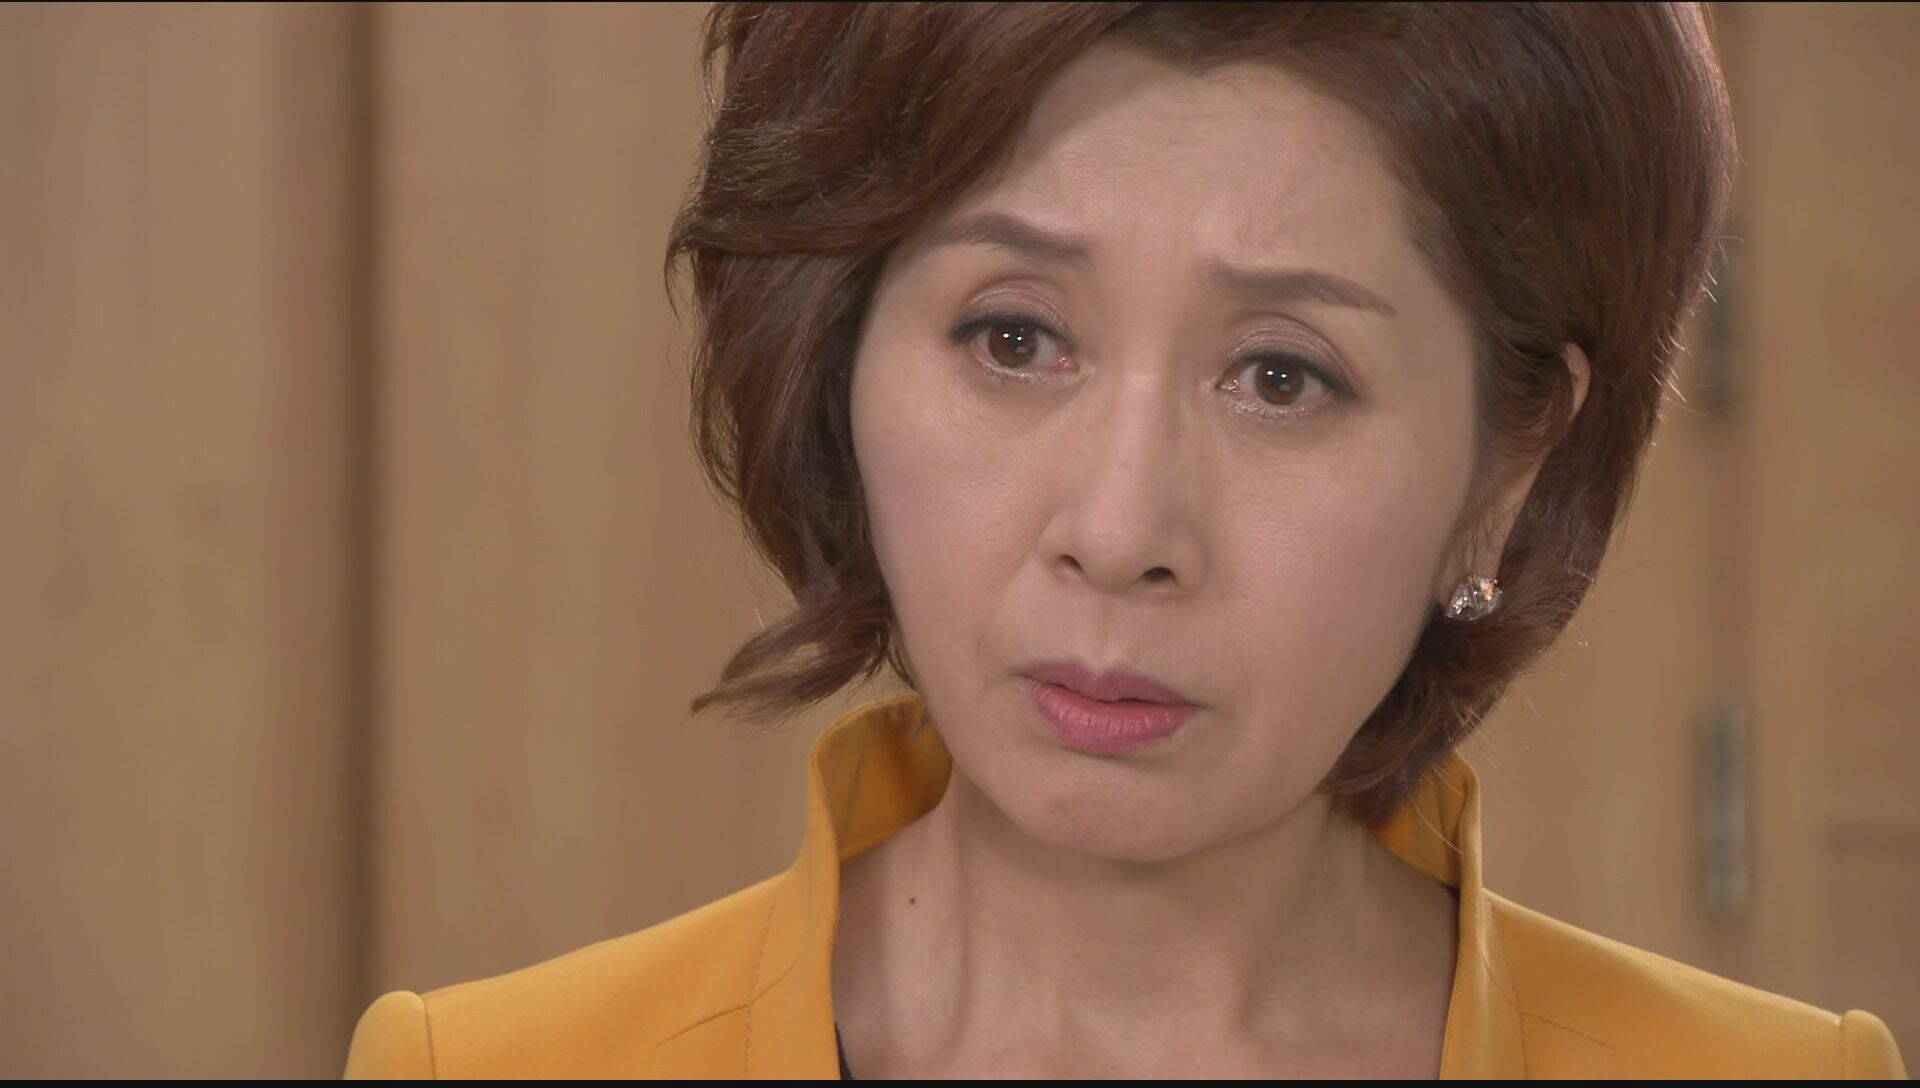 [A Daughter Just Like You] 딱 너같은 딸 102회 - Hye-ok,Get to know Sung Min lo...